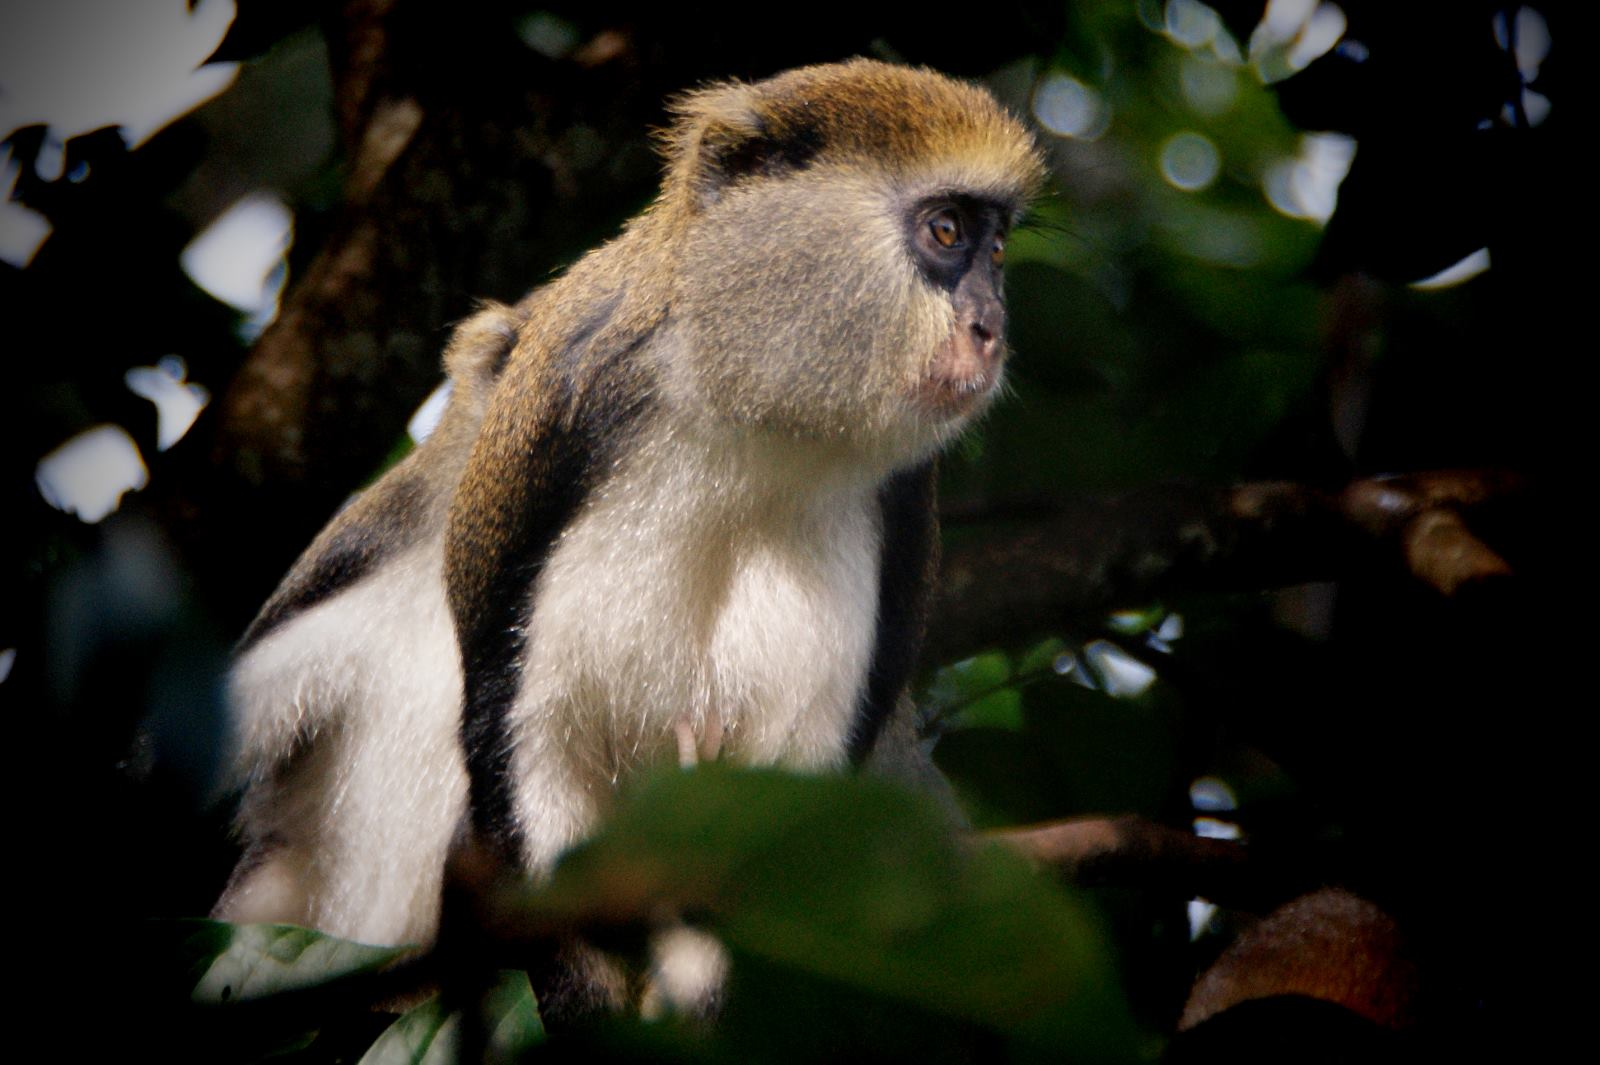 Primate Tracking at Kibale Forest in Uganda